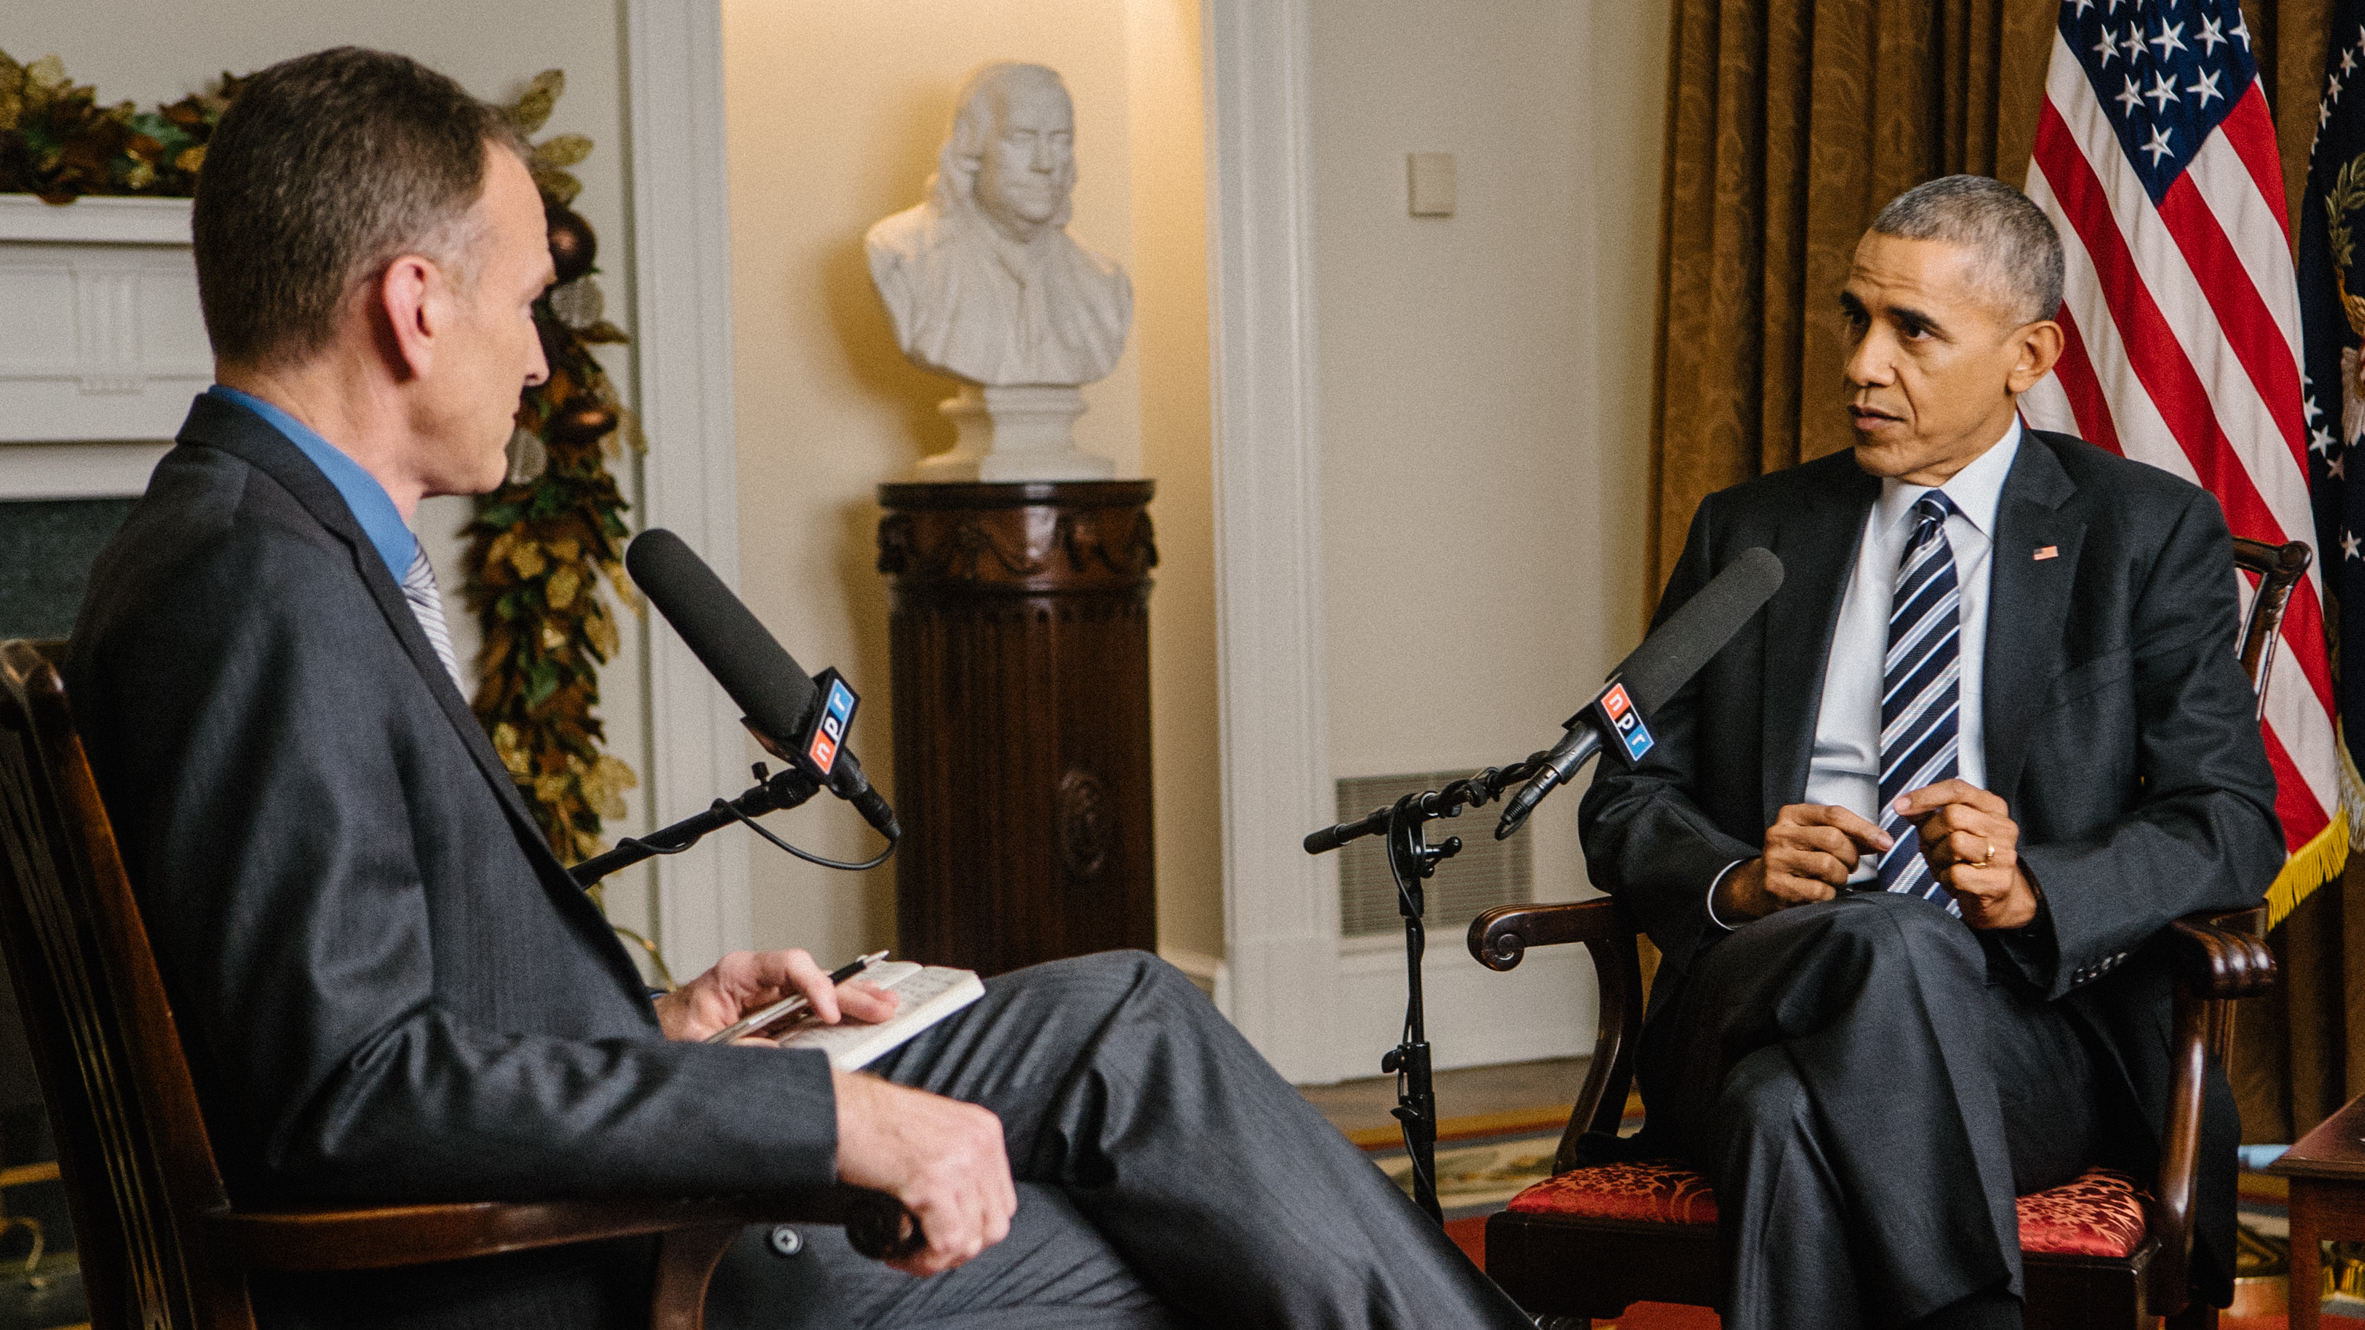 Npr News Exit Interview With President Obama Npr